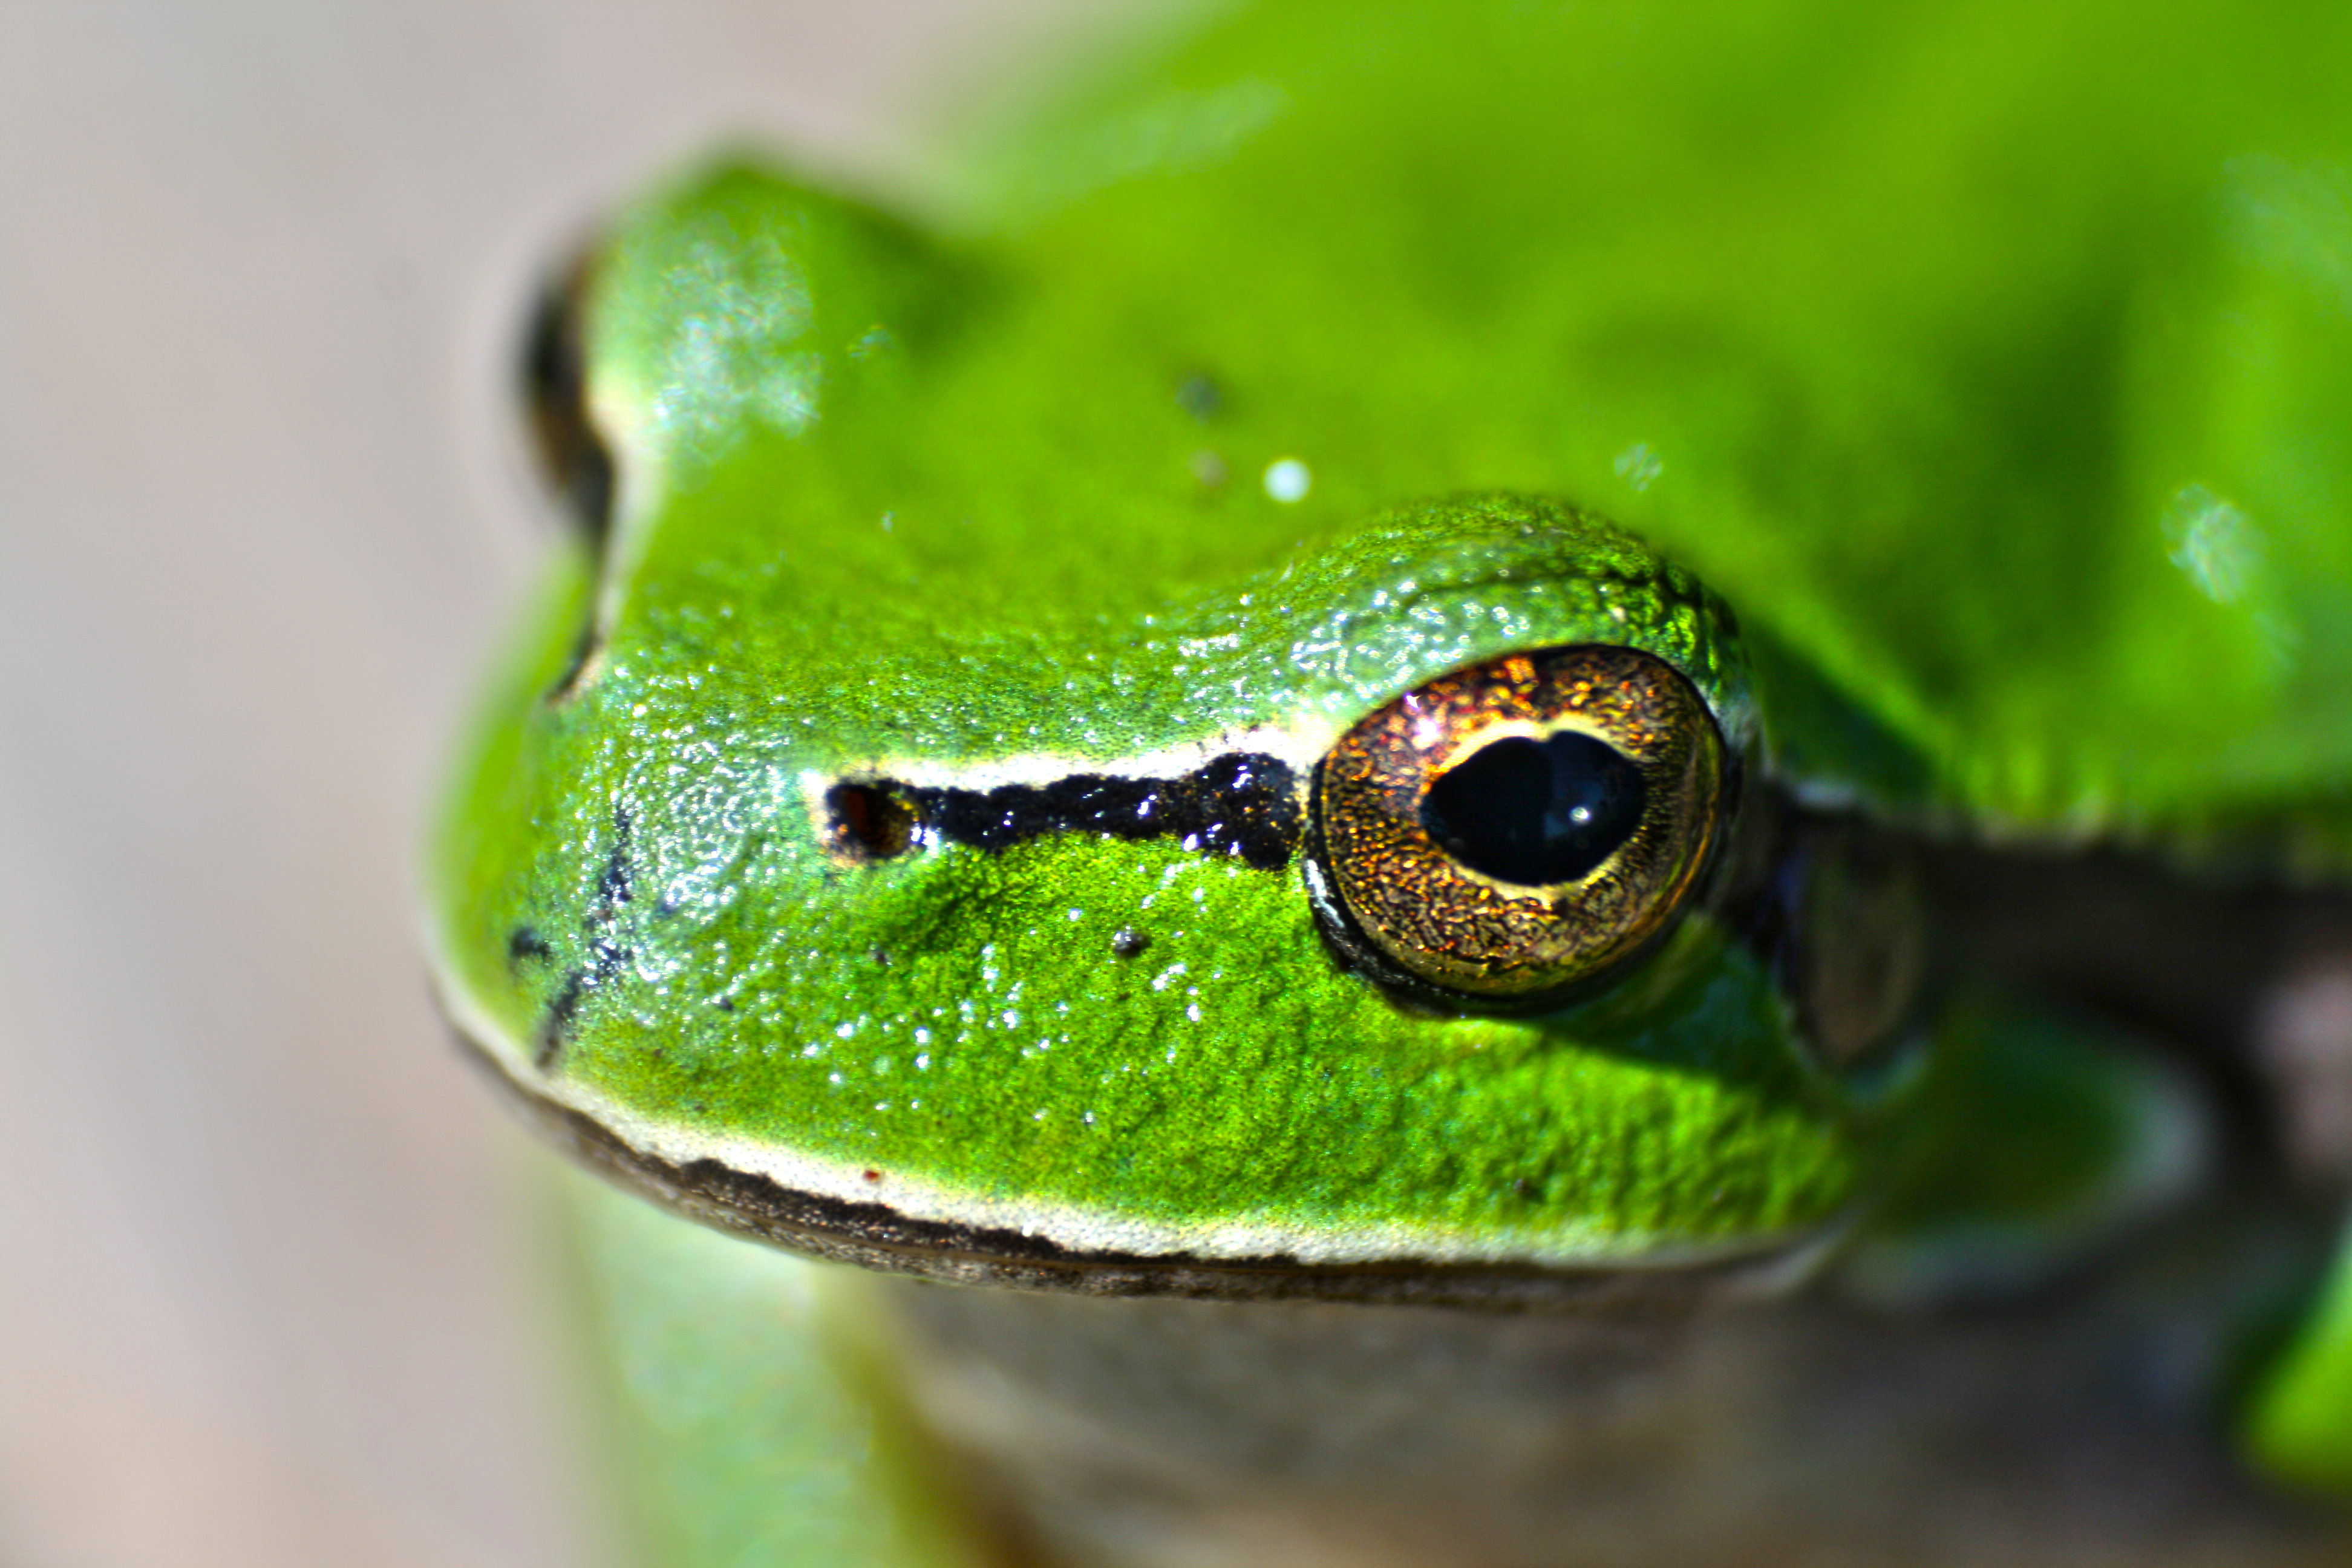 Frog Pictures Pexels Free Stock Photos